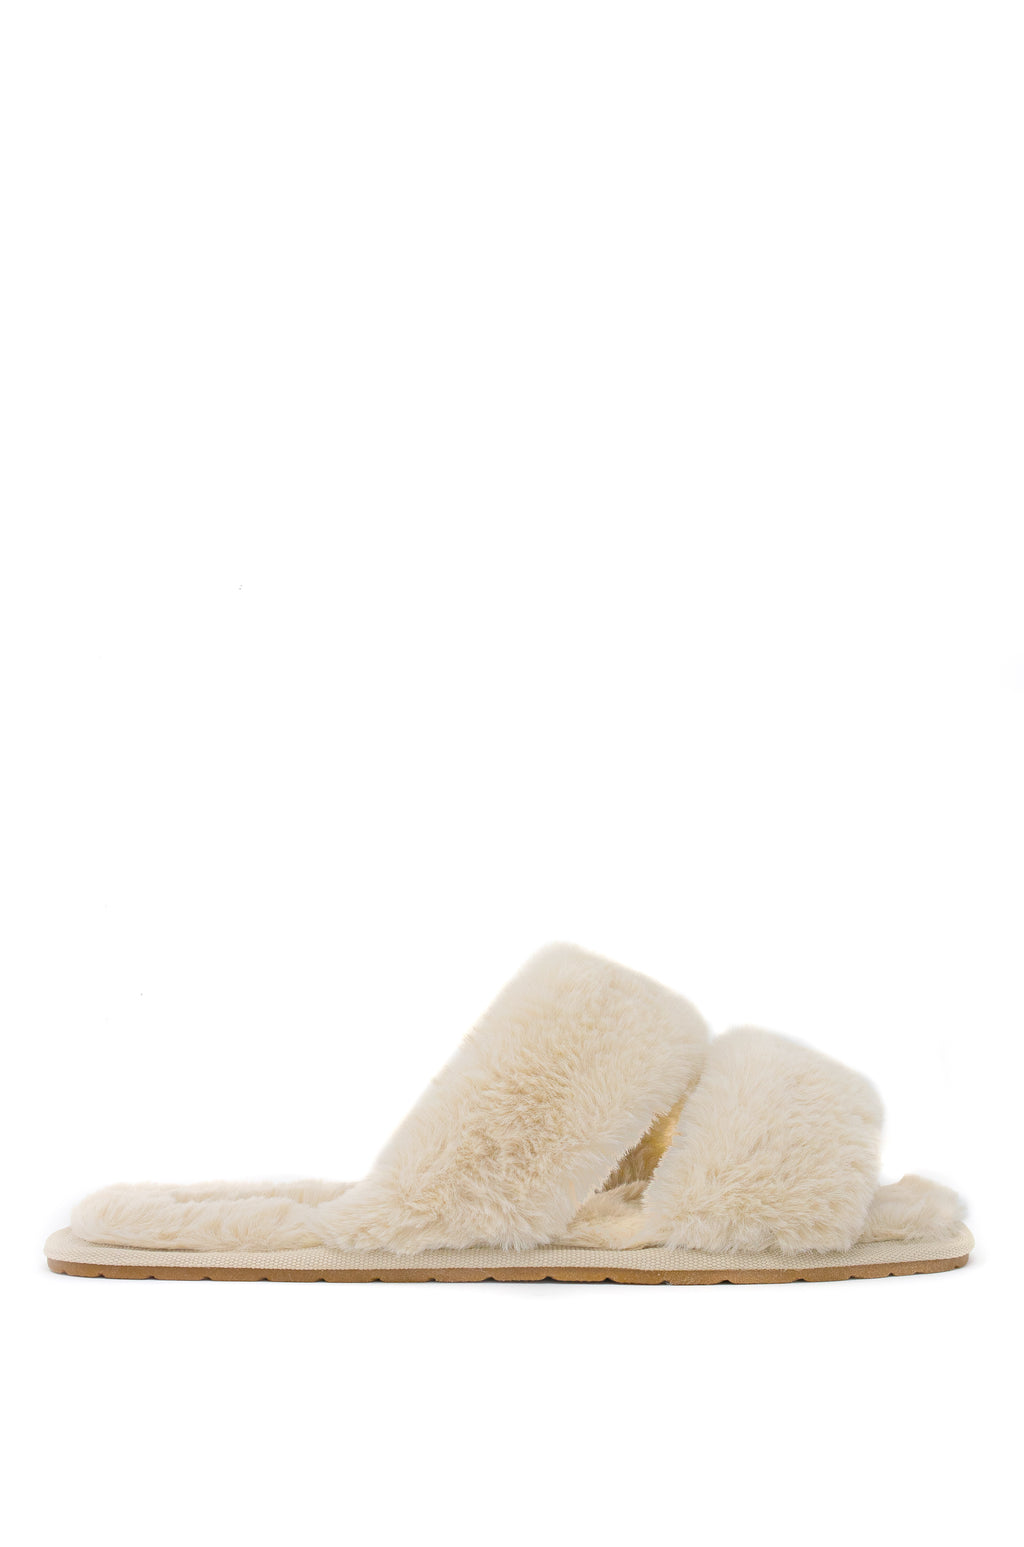 Chill Out - Oatmeal Sandals